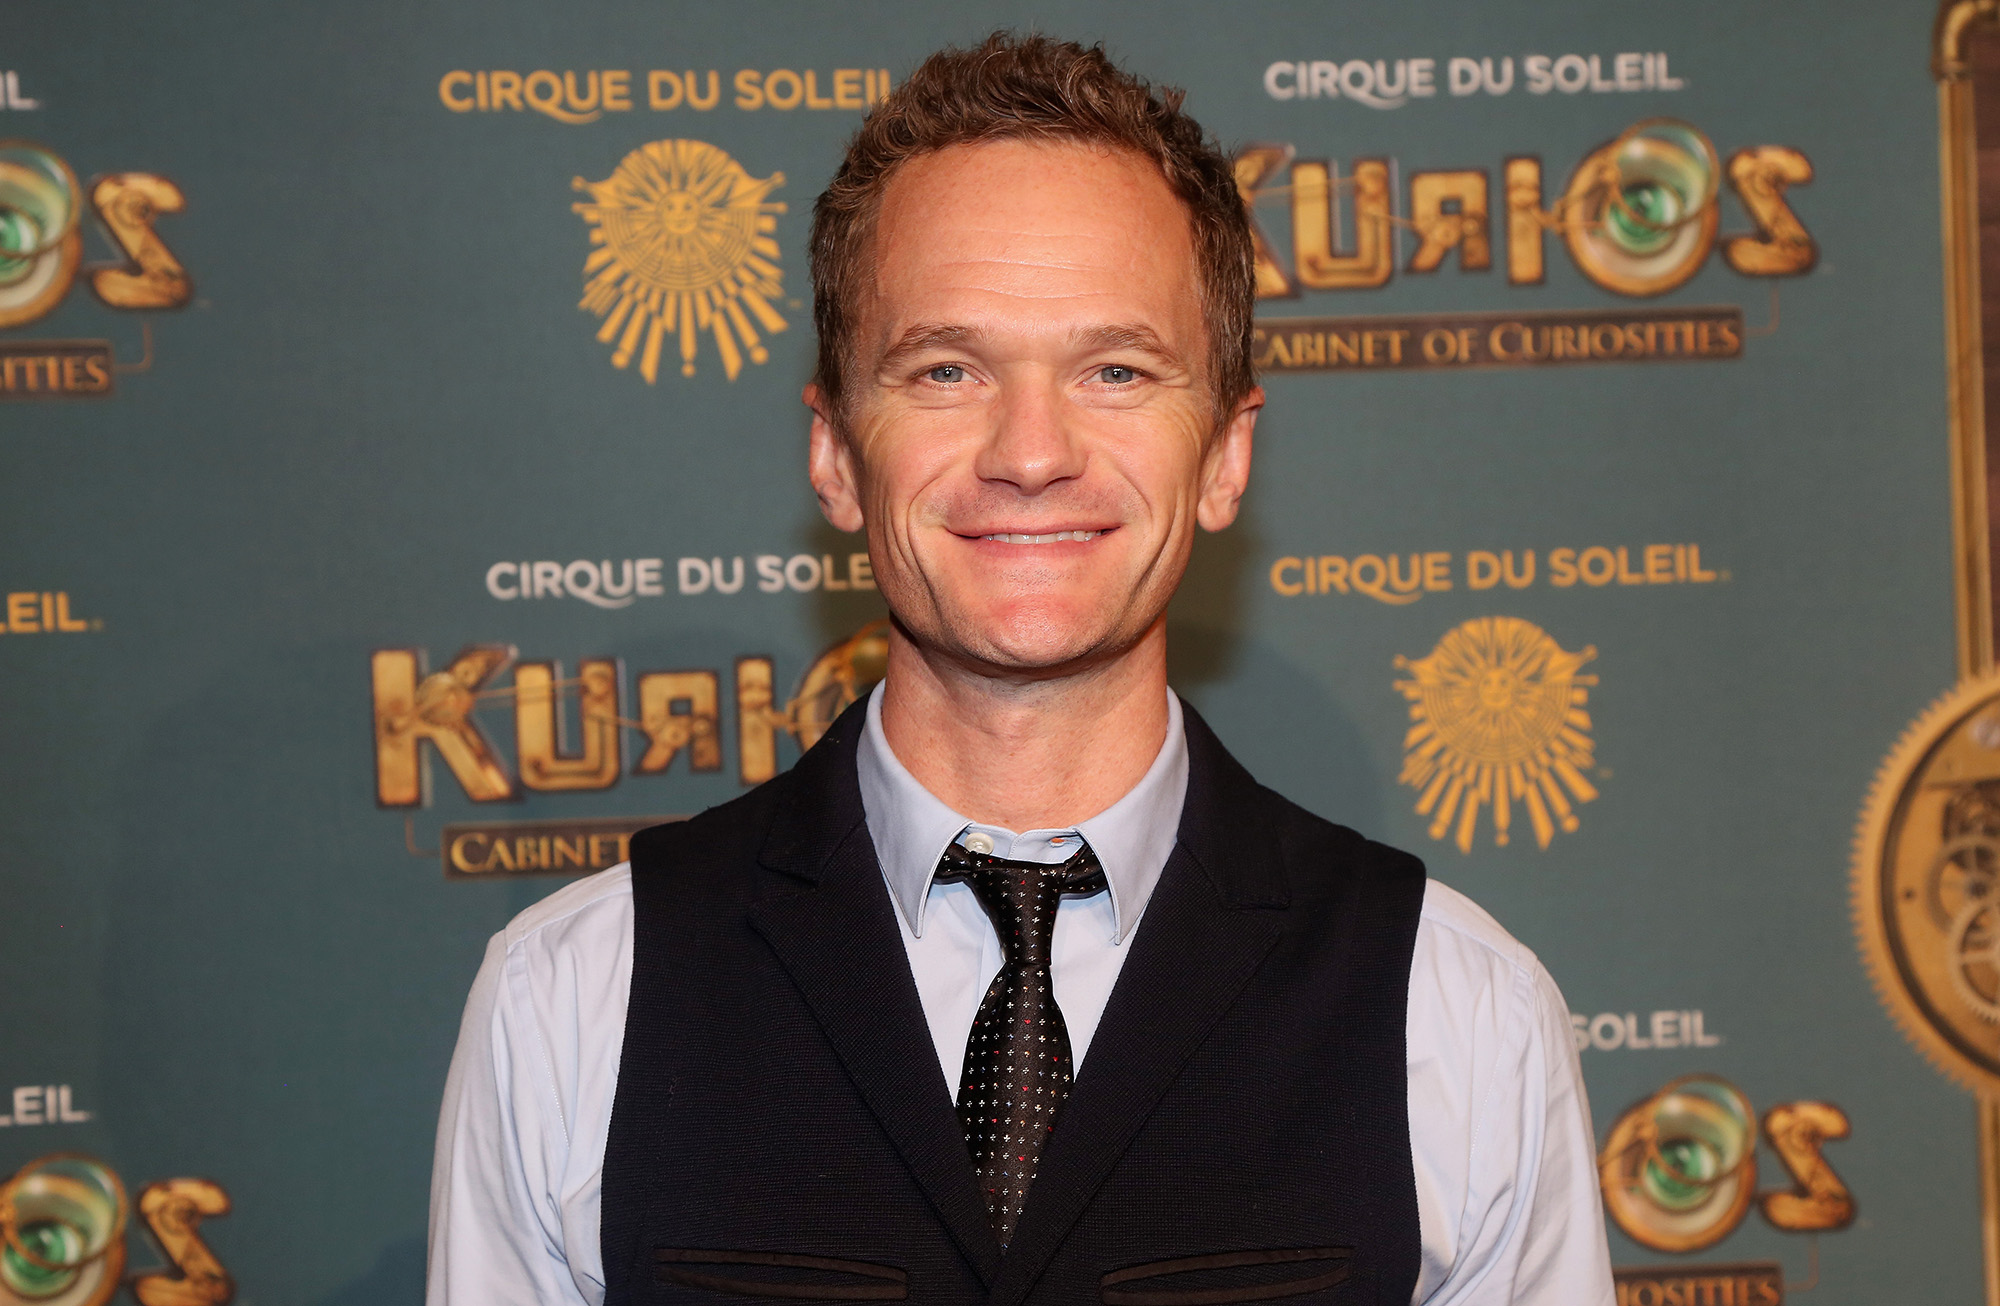 Neil Patrick Harris poses at The Opening Night of  Cirque du Soleil: Kurios - Cabinet Of Curiosities  at Randall's Island Park on September 29, 2016 in New York Cit  (Photo by Bruce Glikas/Bruce Glikas/Getty Images)